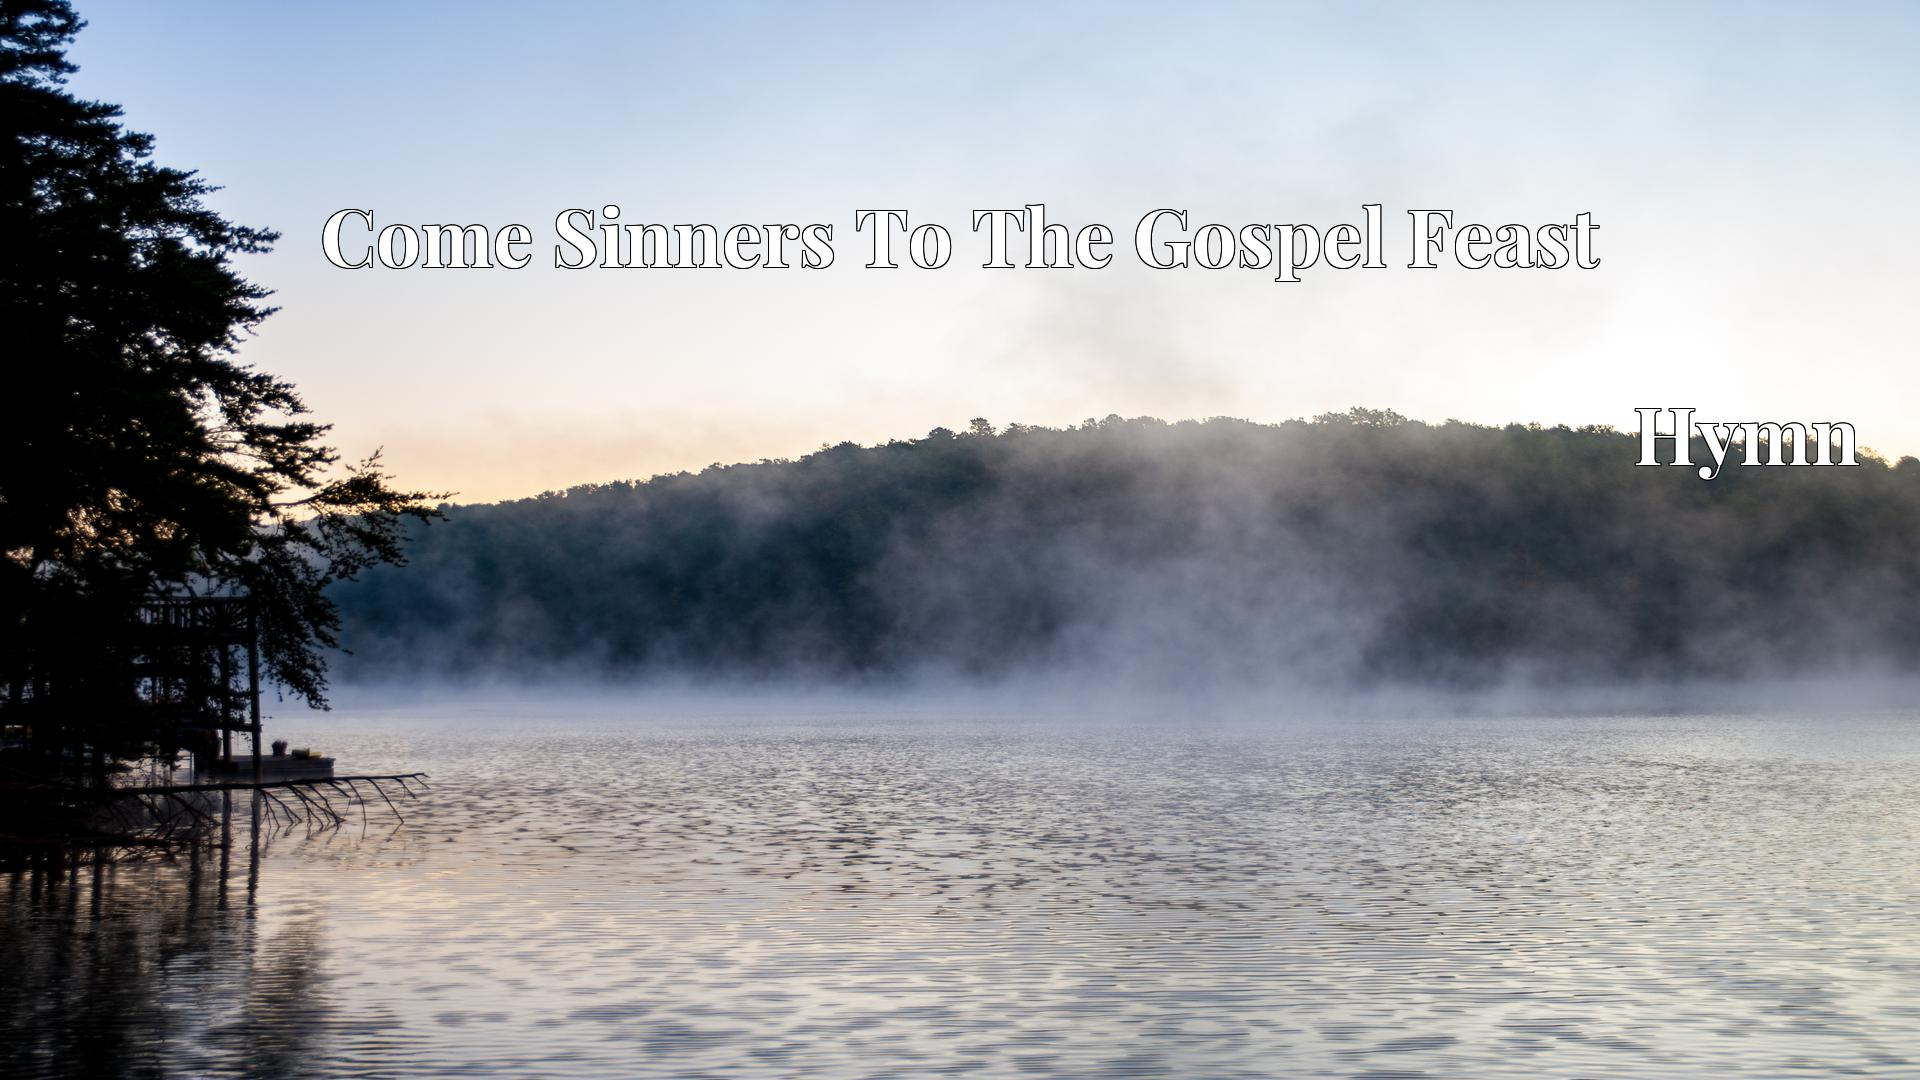 Come Sinners To The Gospel Feast - Hymn